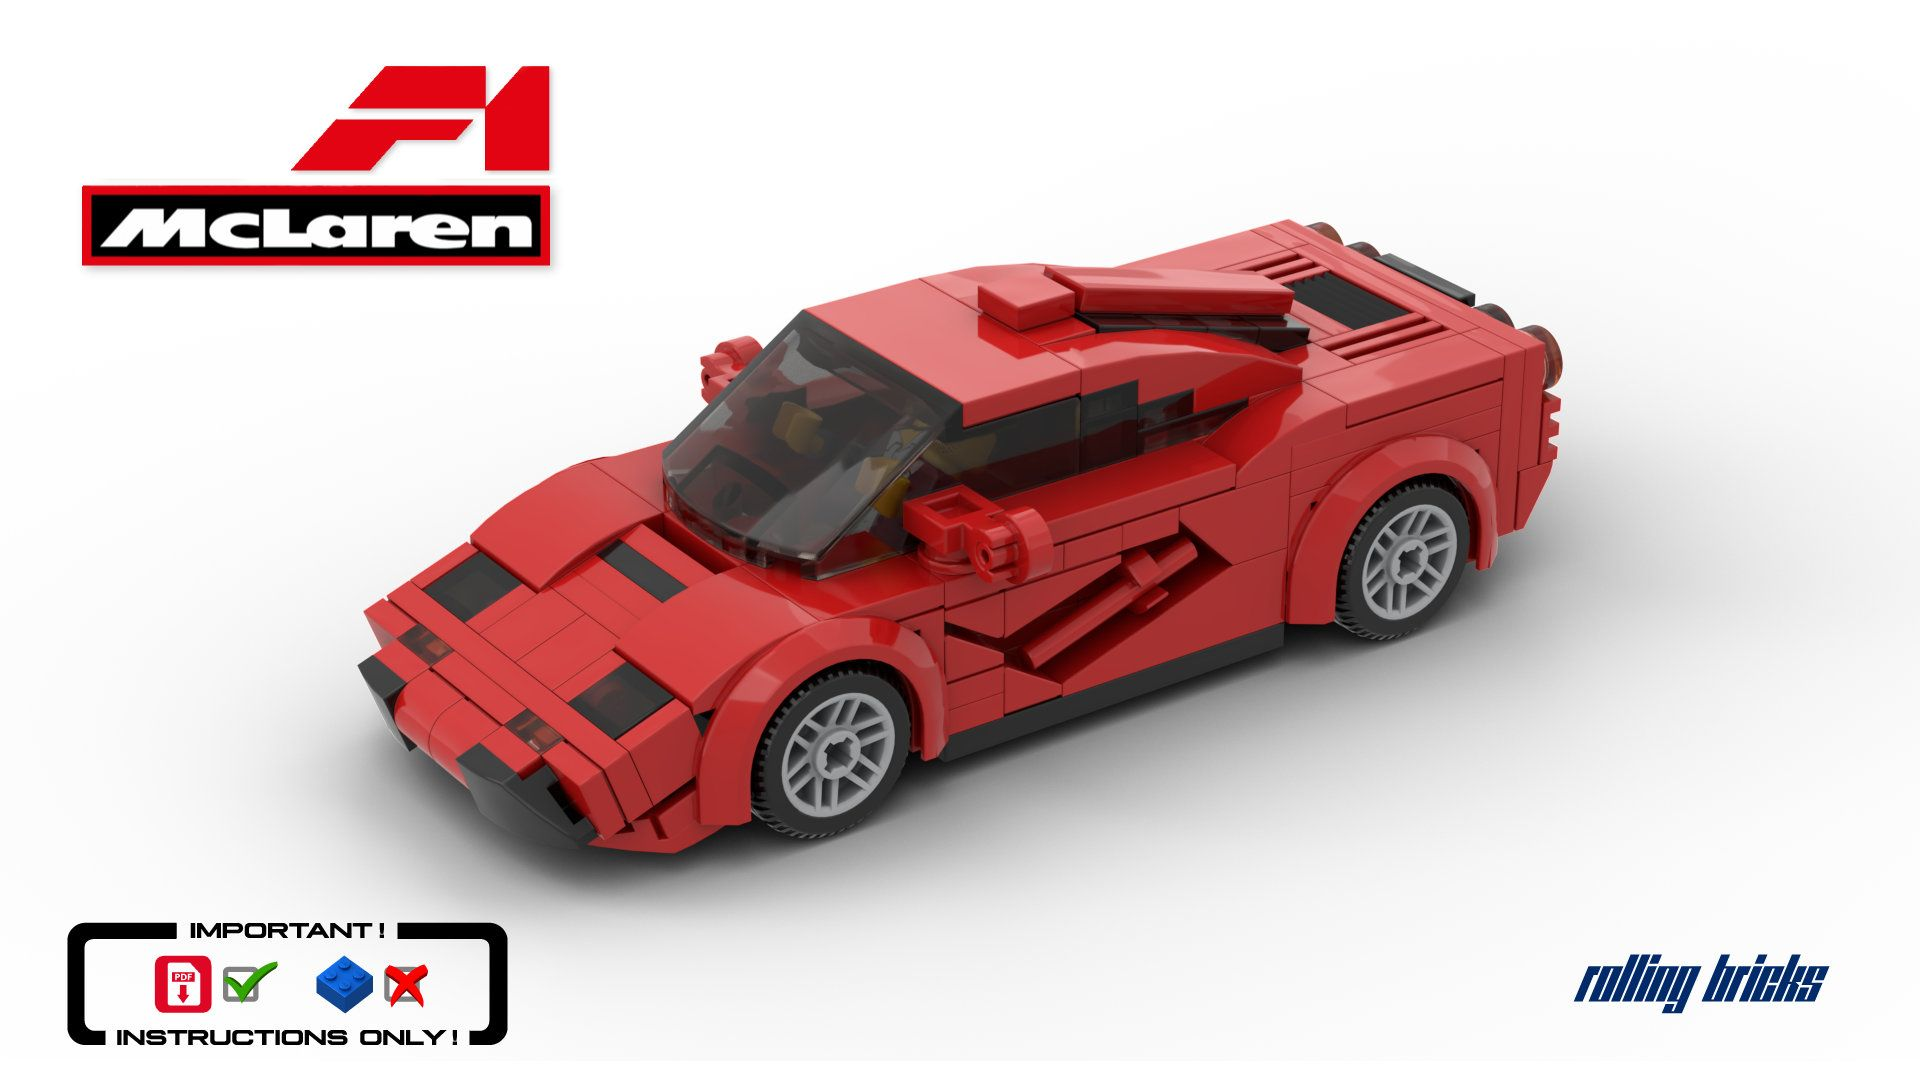 Lego Mclaren F1 Speed Champions Supercar Le Mans Winner Racer Car Custom Moc Pdf Building Instructions Only In 2020 Super Cars Mclaren F1 Fastest Production Cars